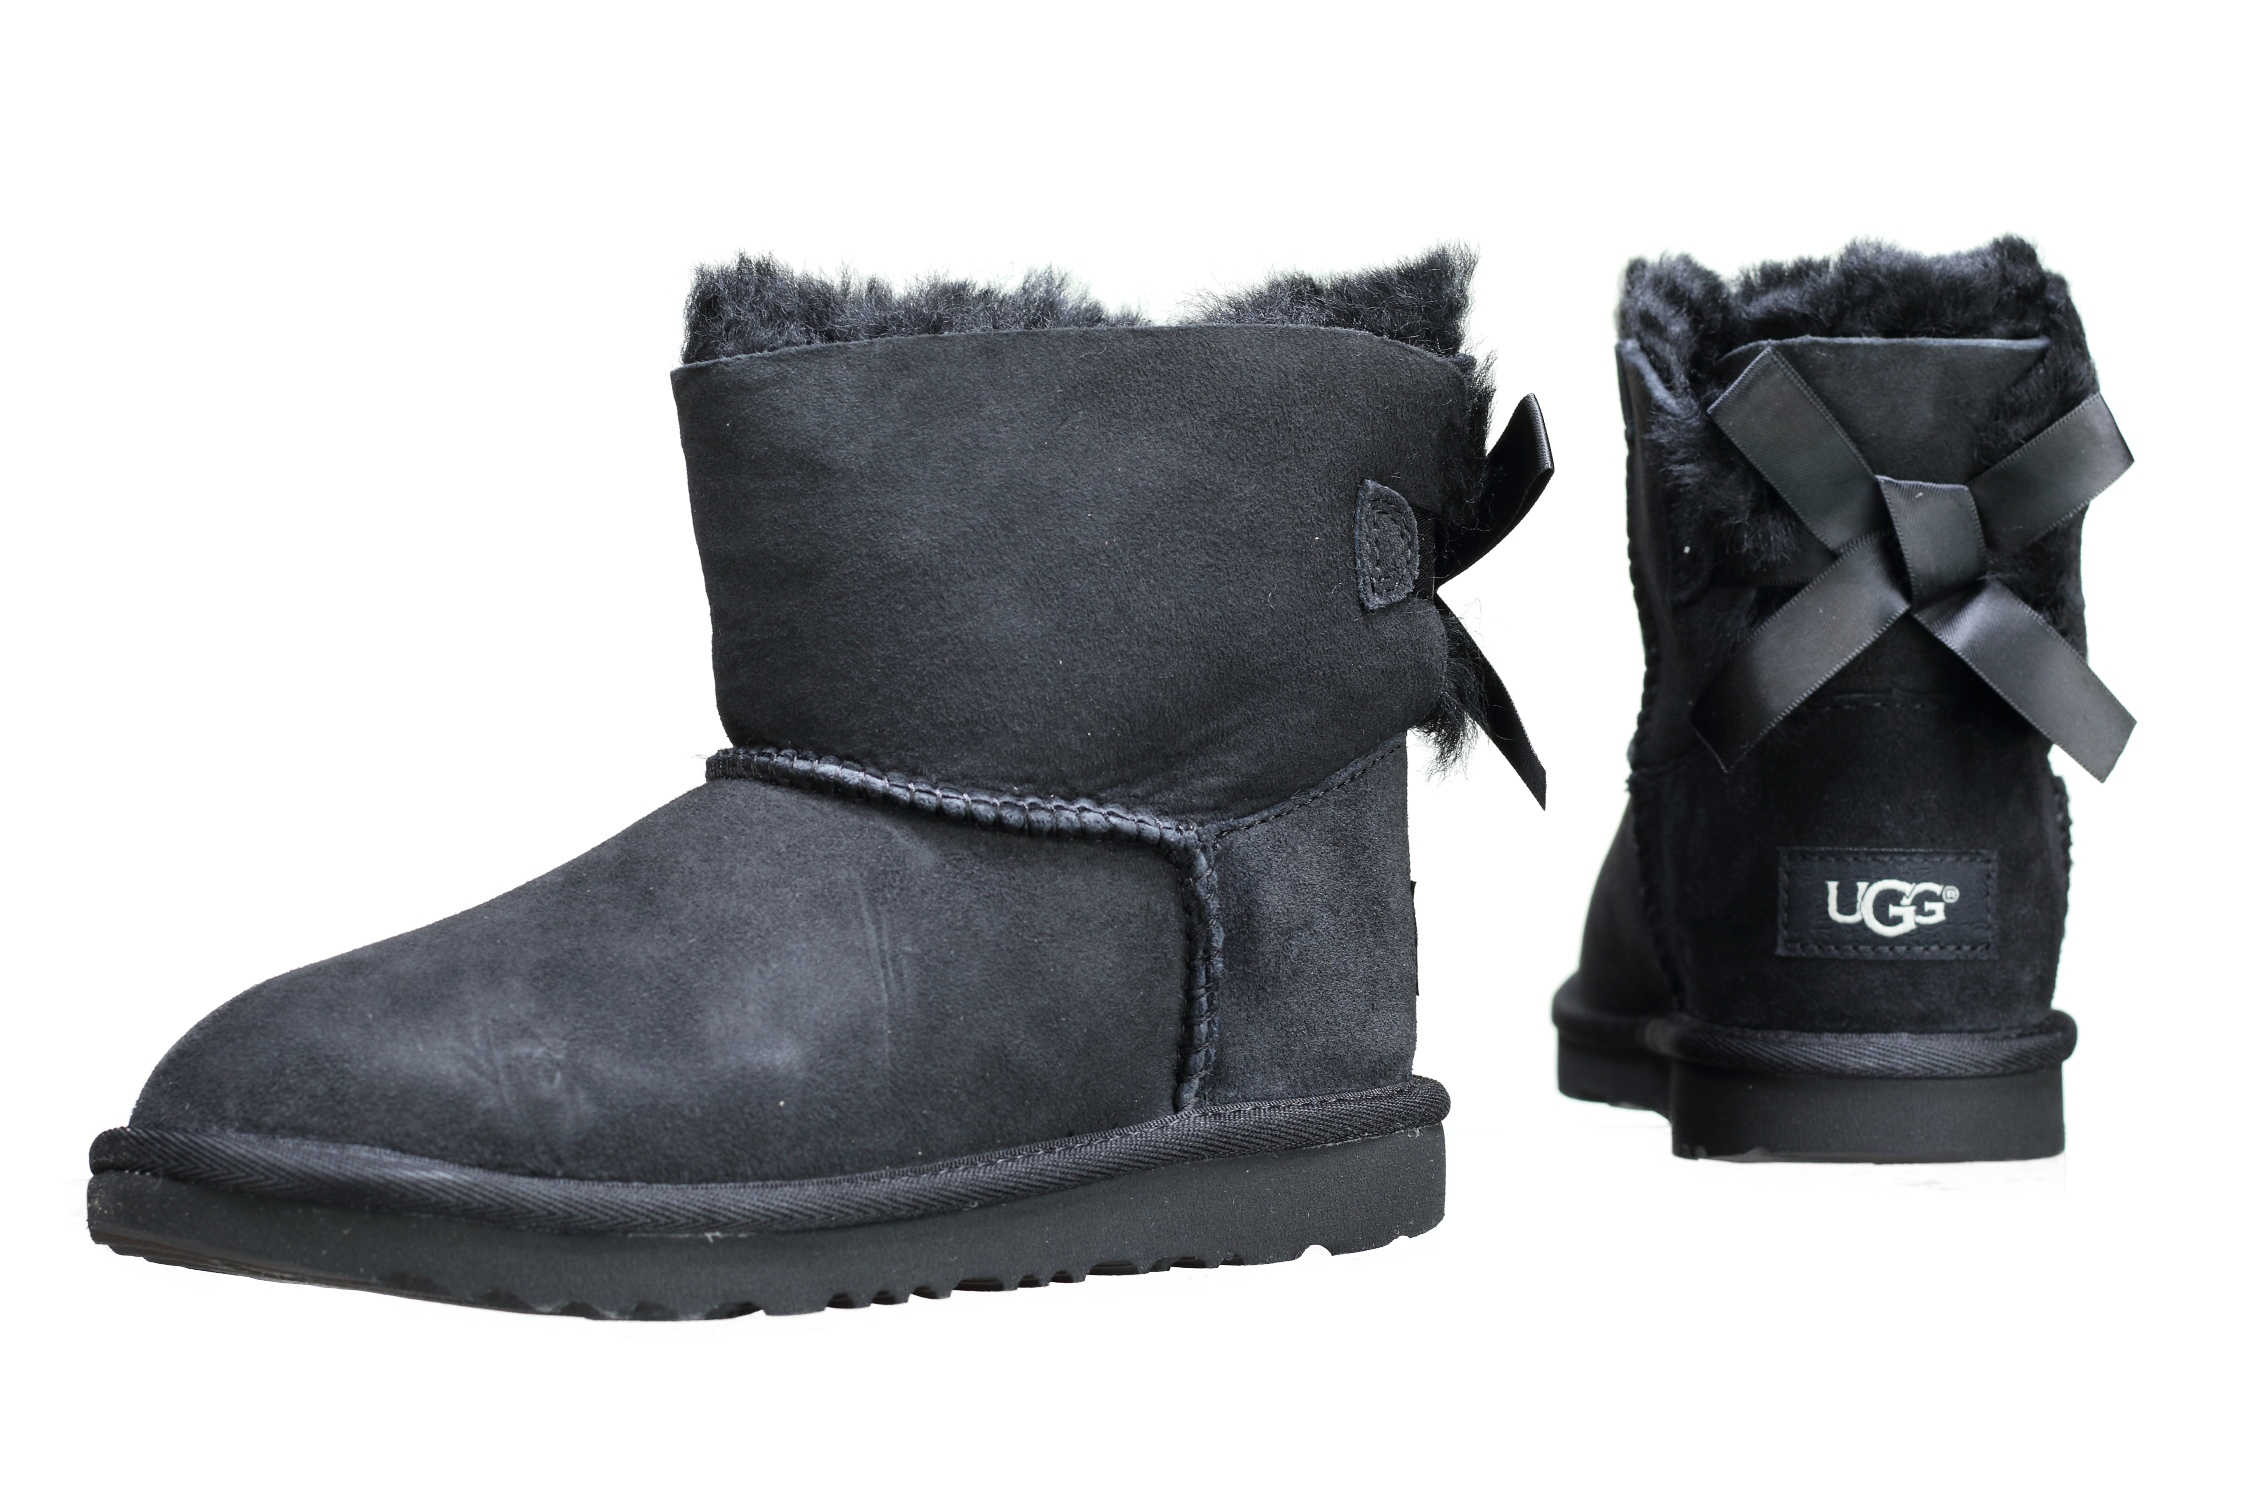 https://www.leadermode.com/135412/ugg-k-mini-bailey-bow-2-1017397-k-black.jpg